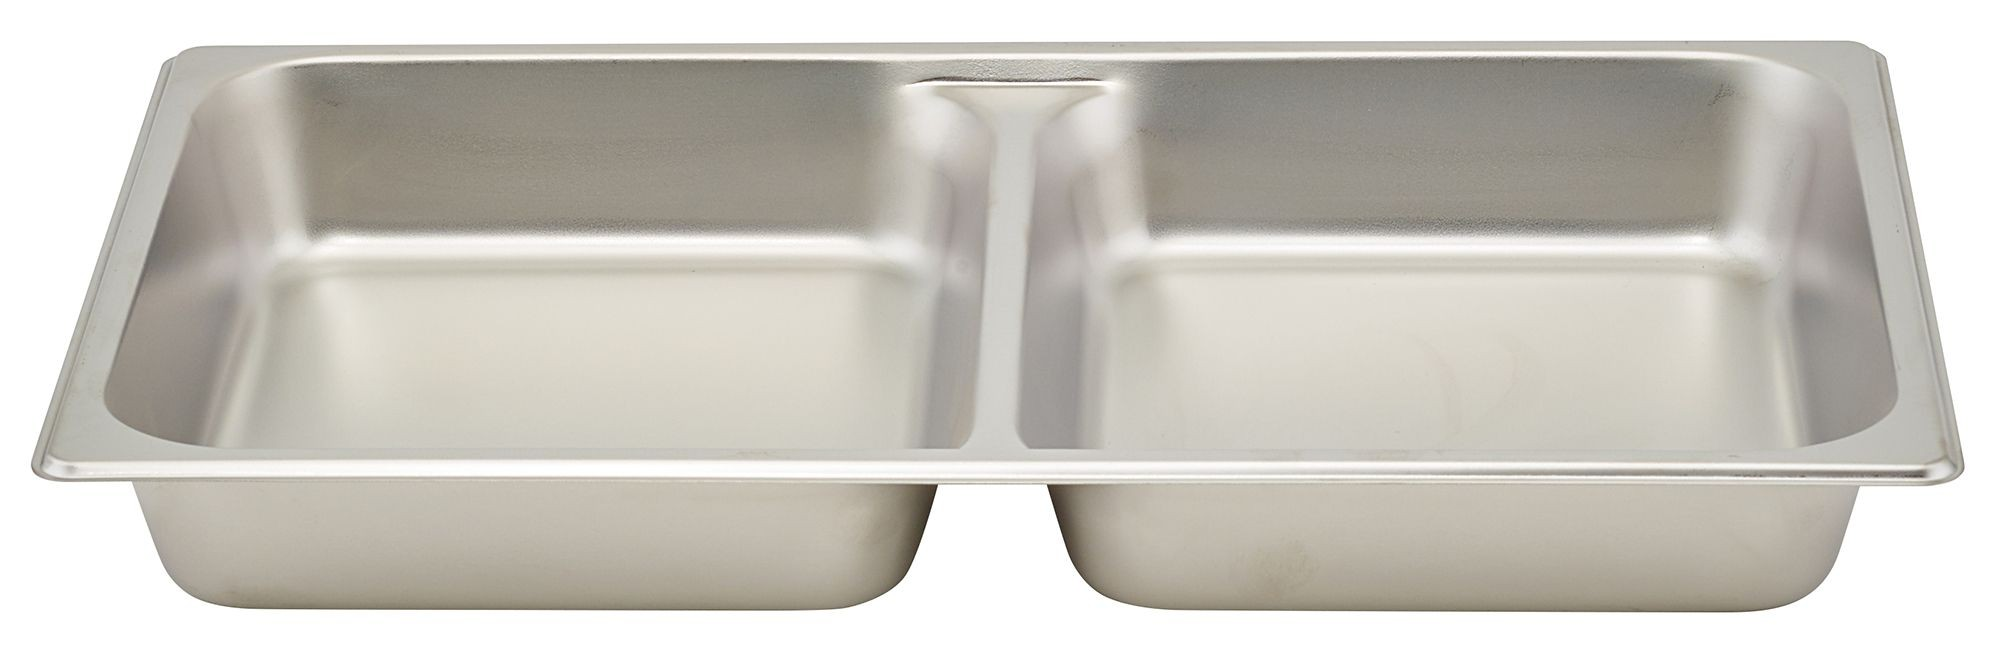 Stainless Steel Divided Full-Size Steam Table Pan - 2-1/2 Deep